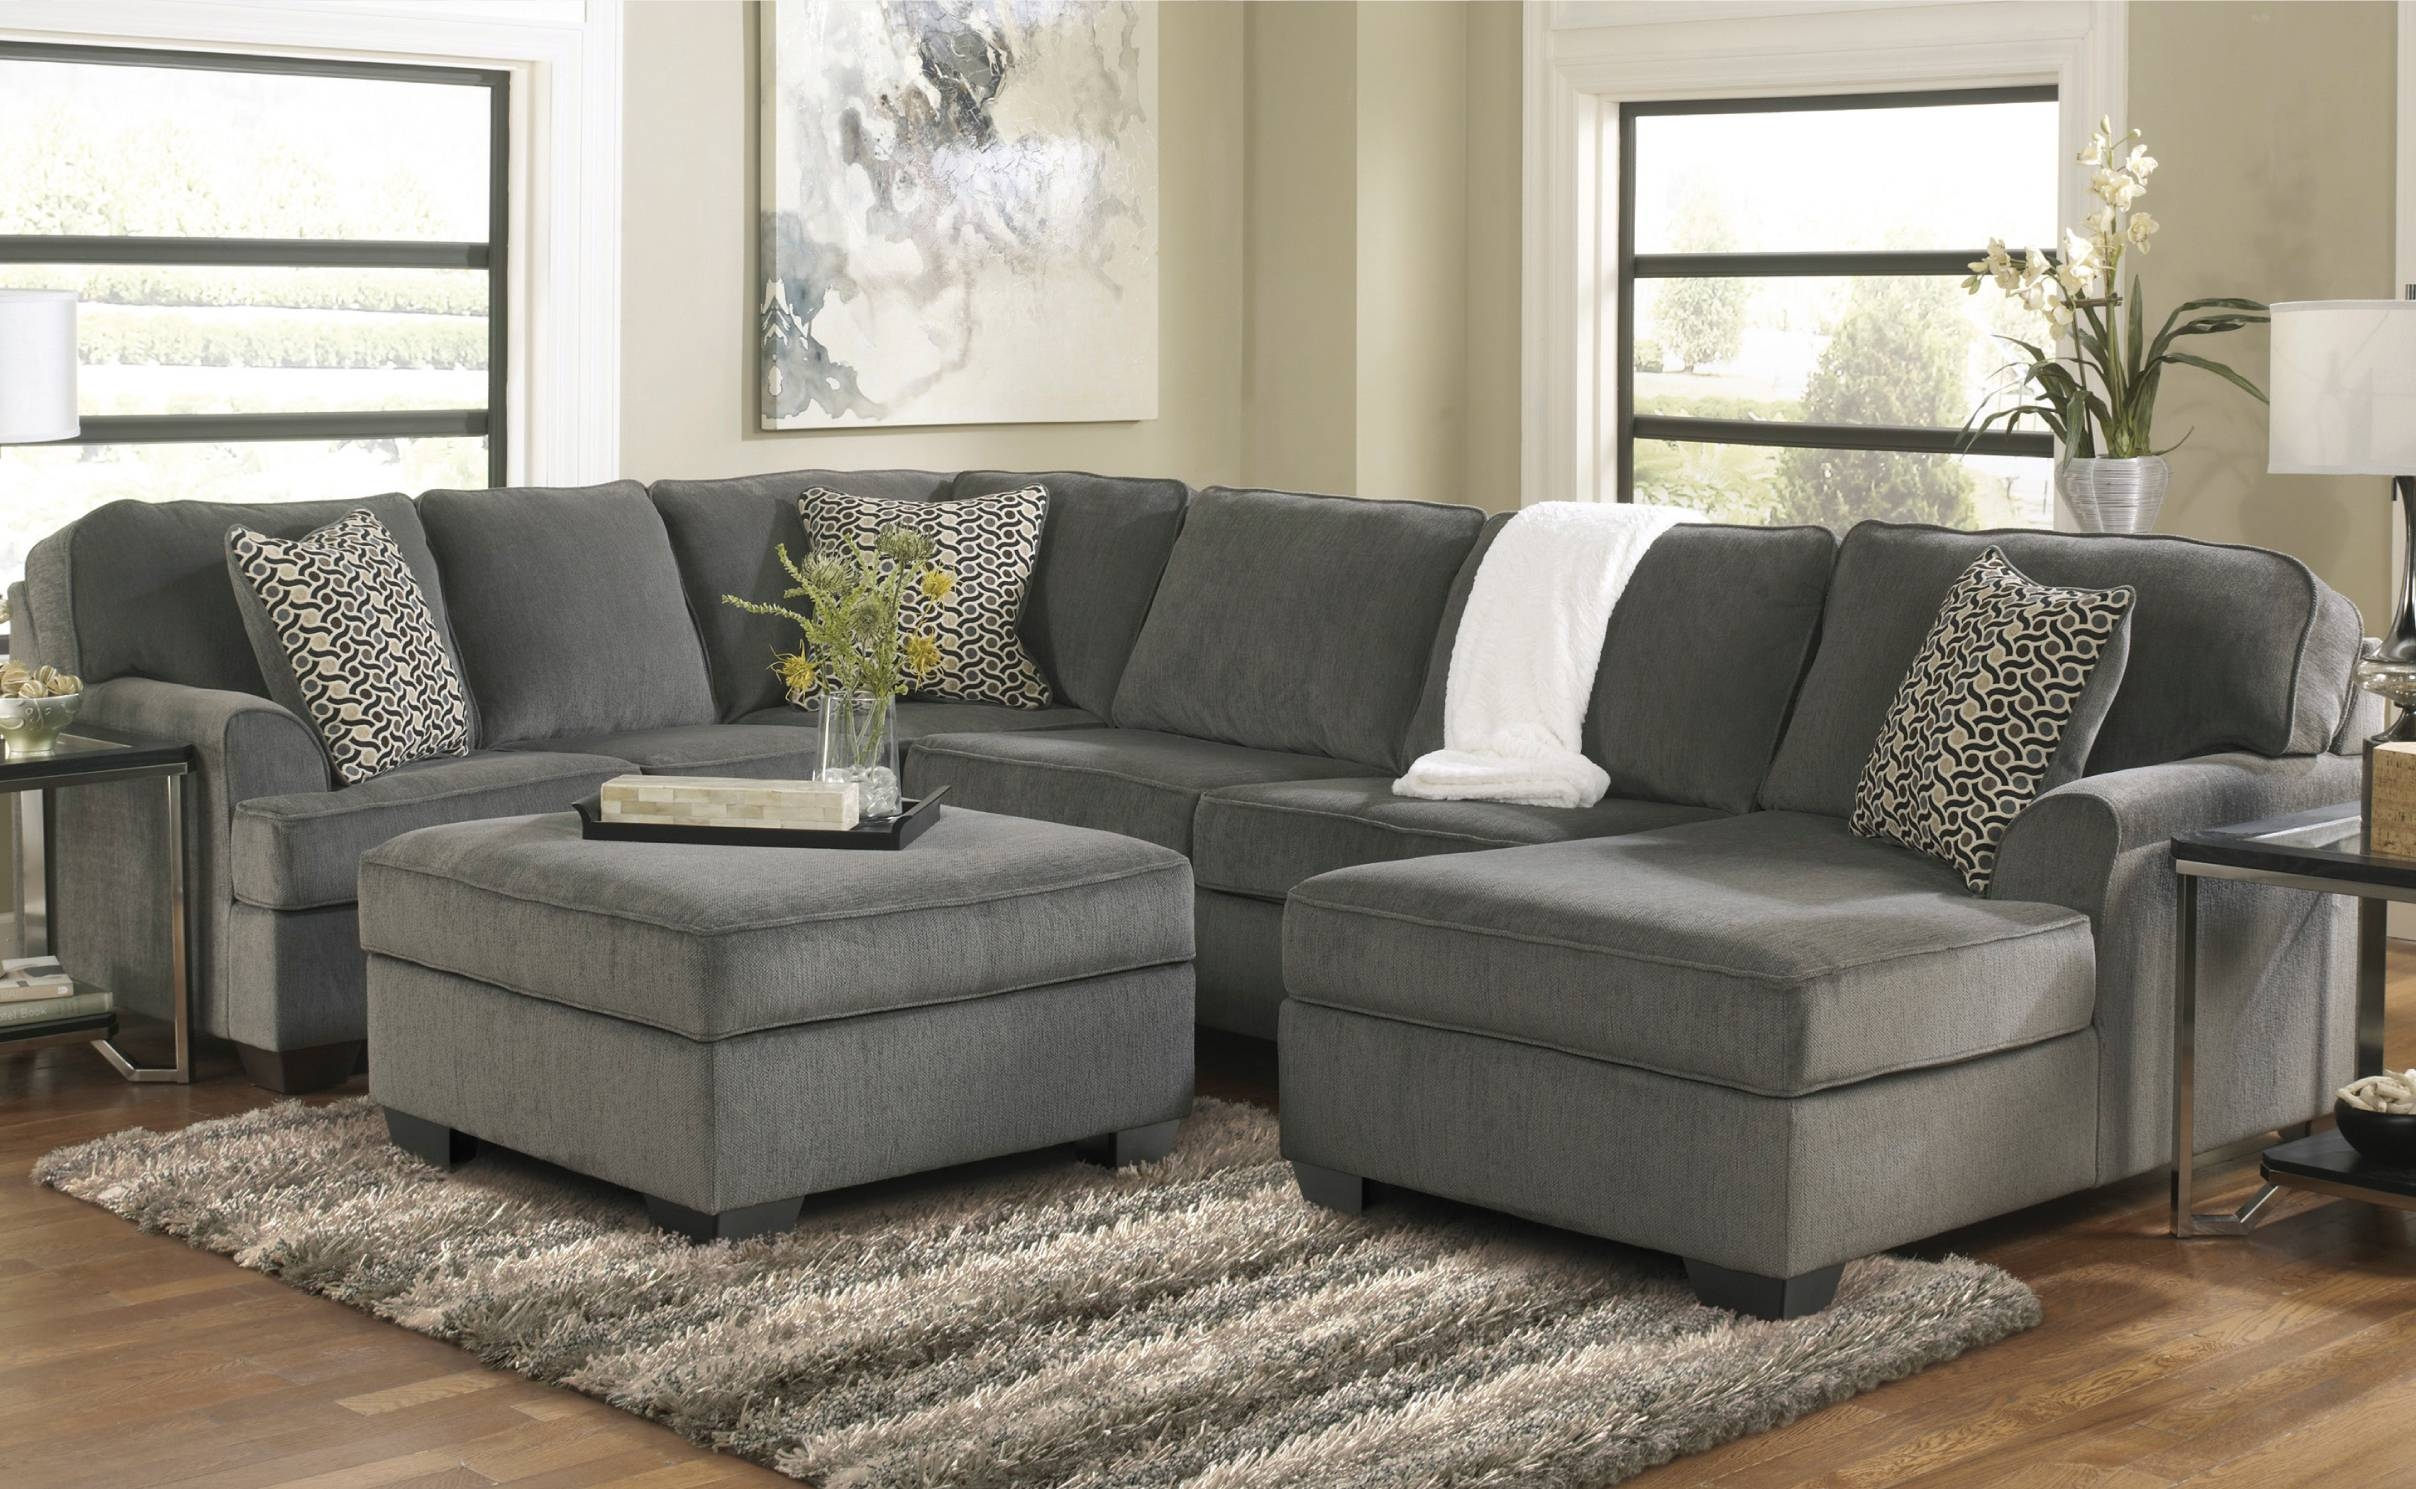 Clearance Furniture In Chicago | Darvin Clearance inside Closeout Sectional Sofas (Image 4 of 30)